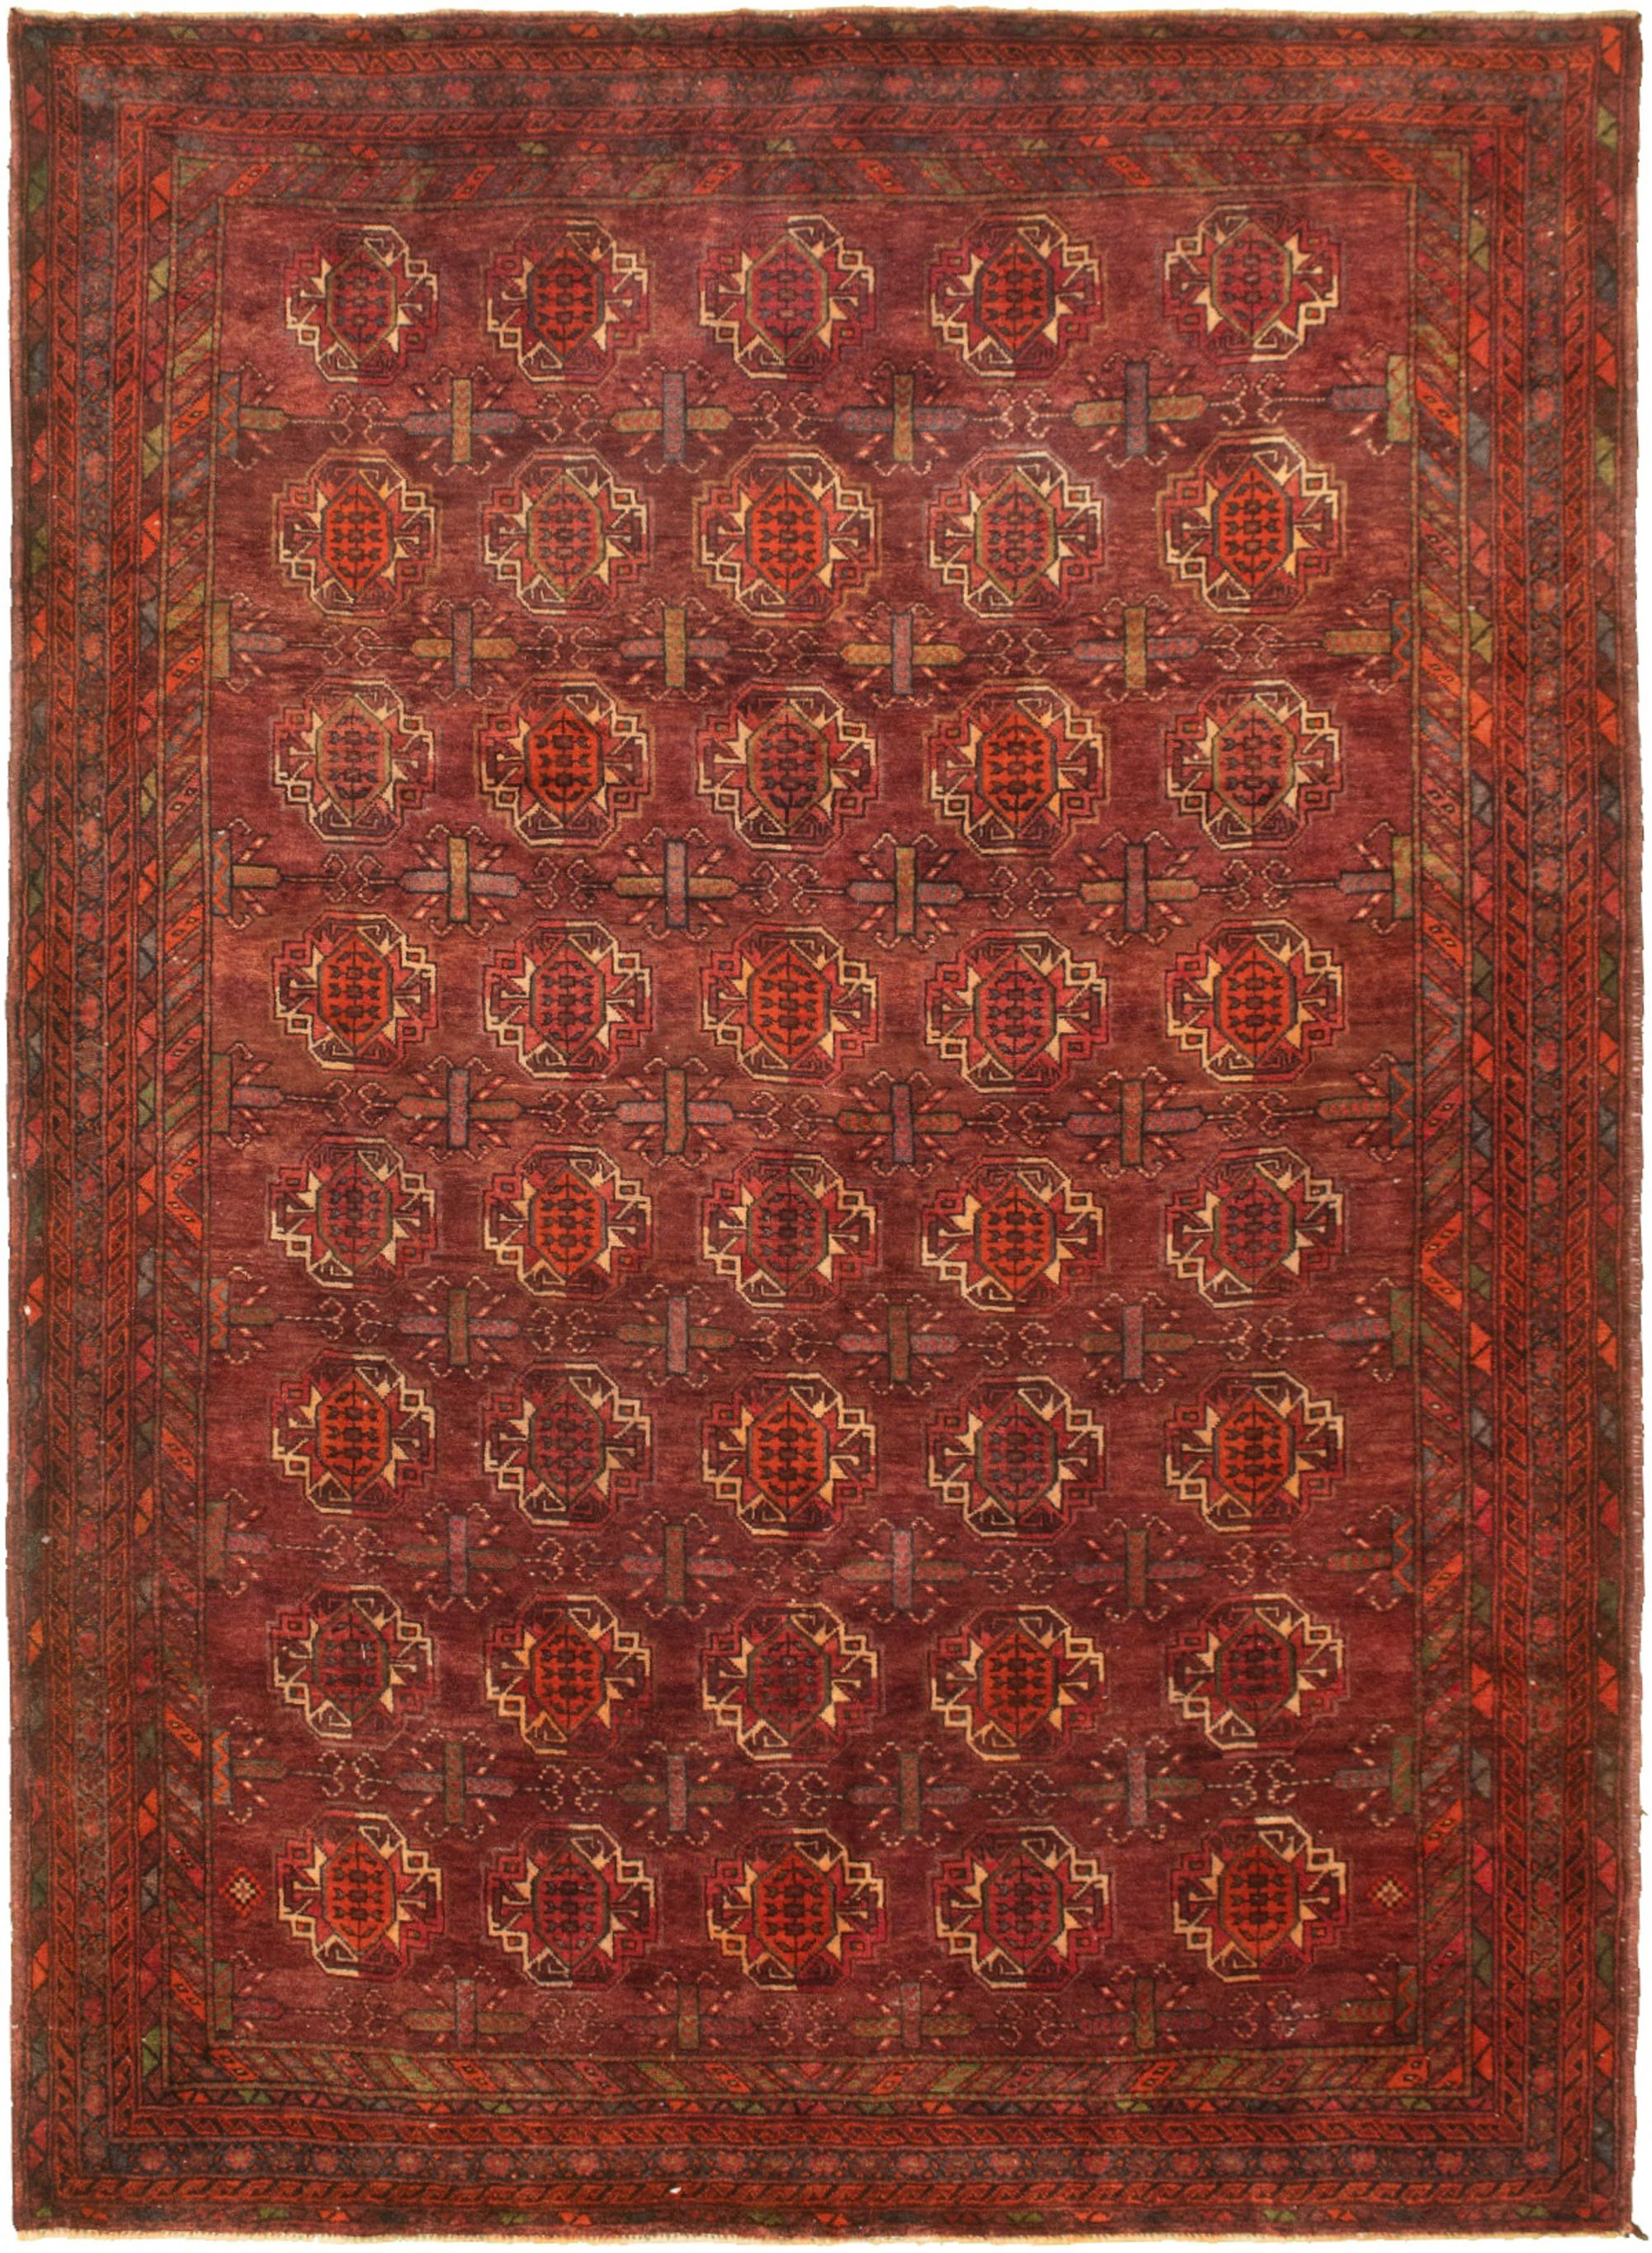 """Hand-knotted Authentic Turkish Dark Brown Wool Rug 6'9"""" x 9'6"""" Size: 6'9"""" x 9'6"""""""